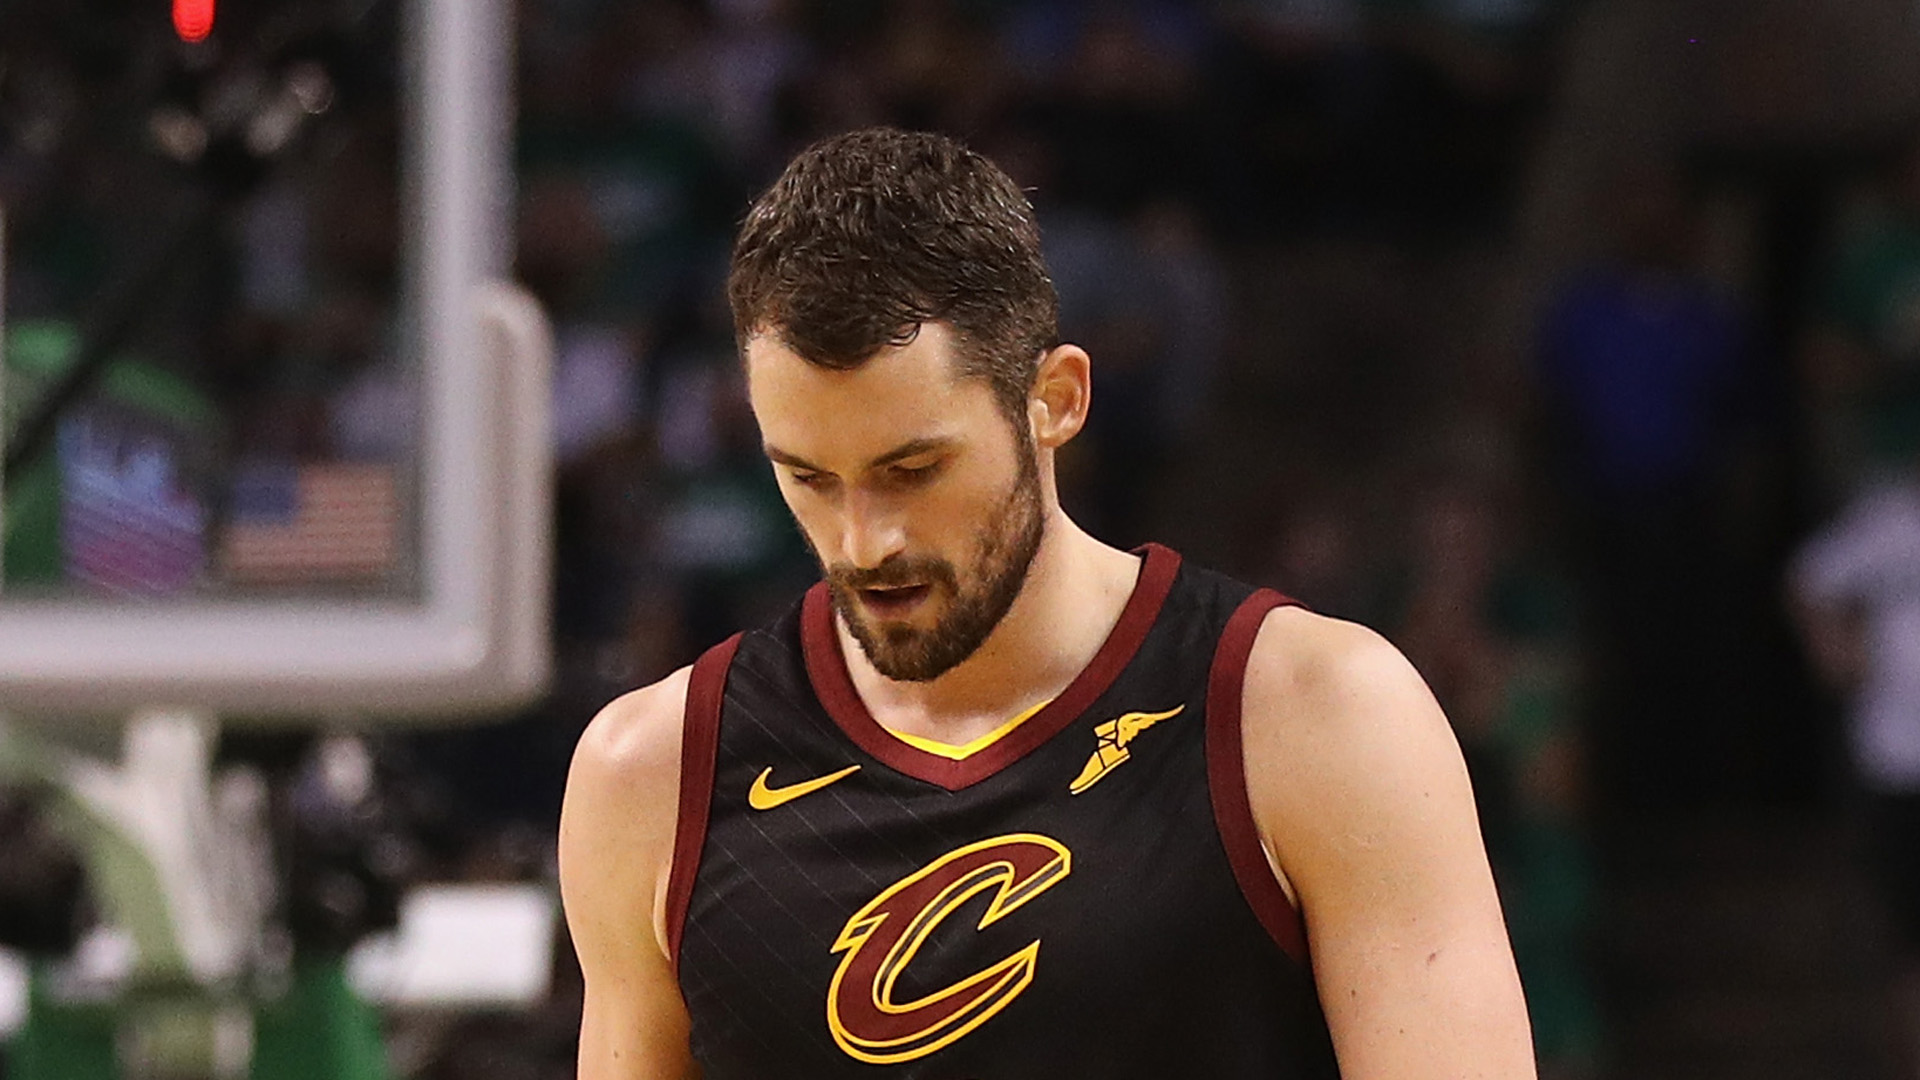 Kevin Love details panic attack: 'I felt like I was going to die'